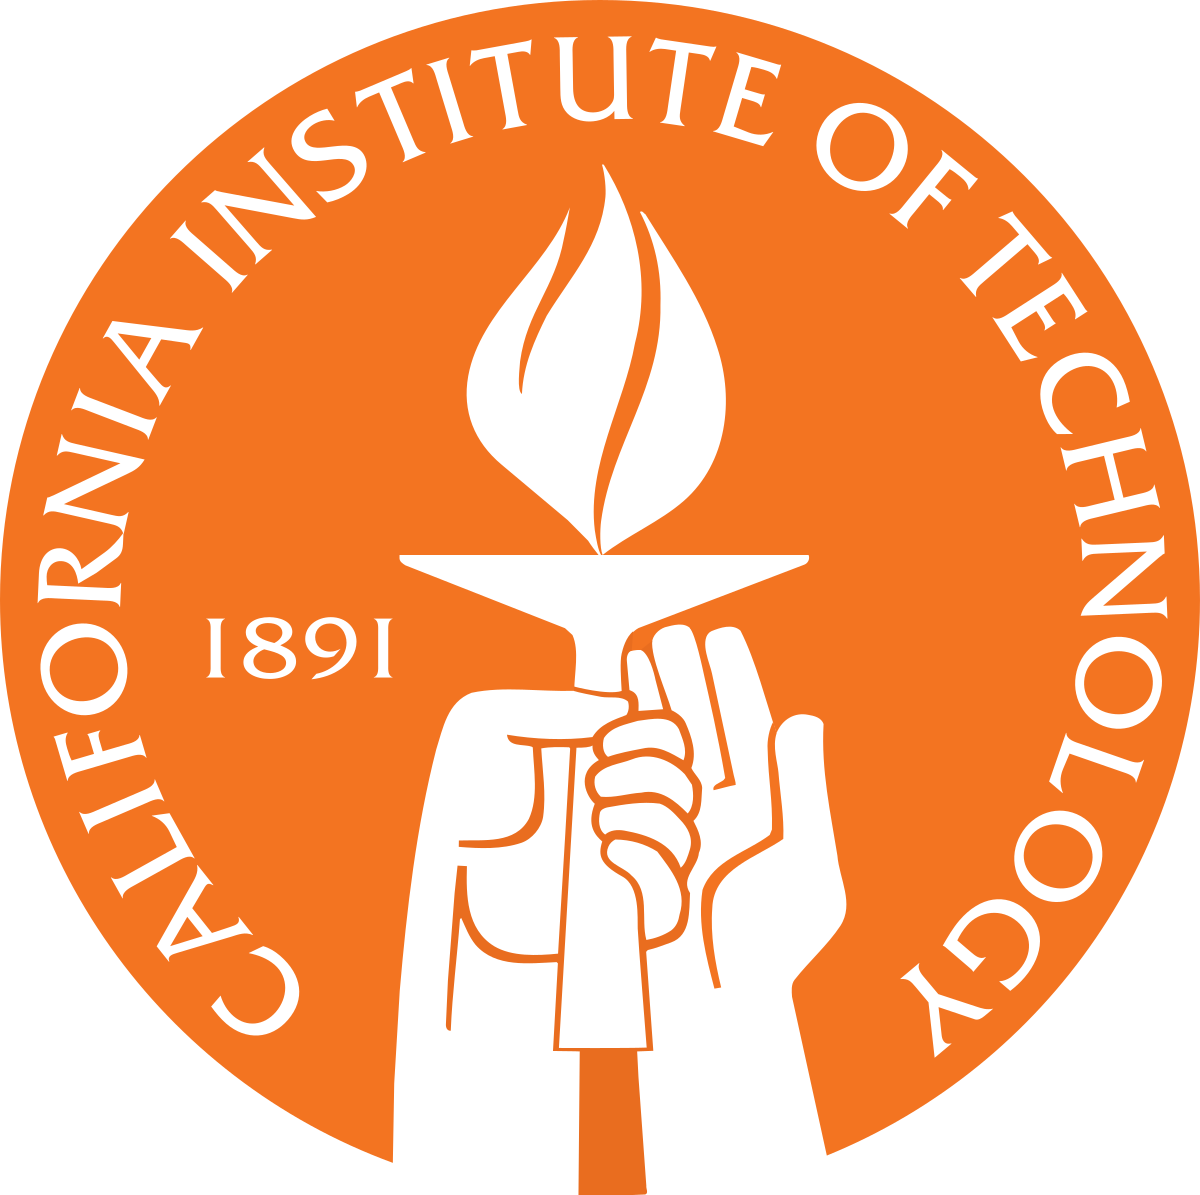 California Institute of Technology admission requirements